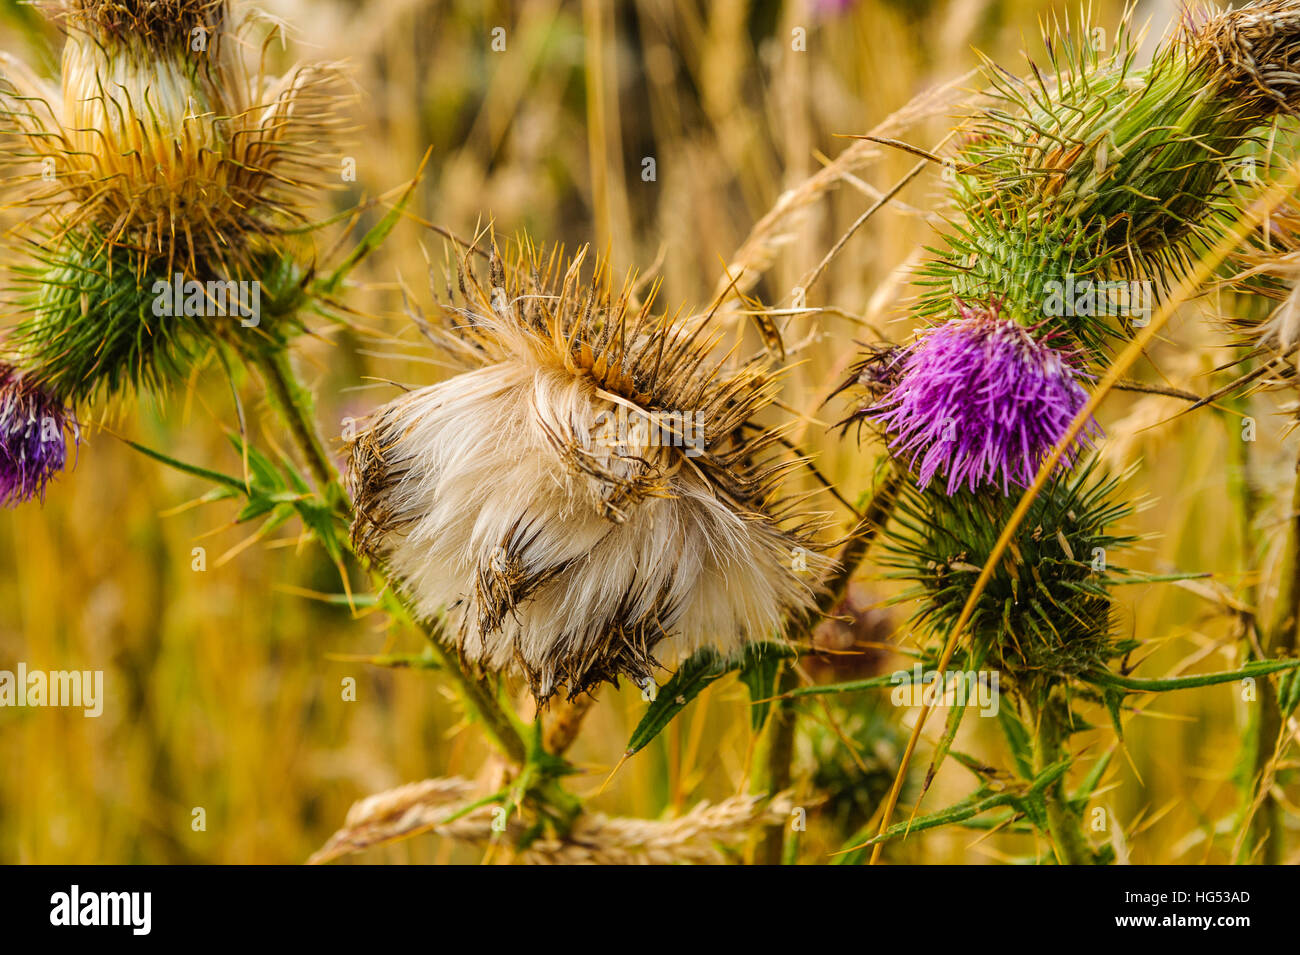 Thistledown on Spear Thistle (Cirsium vulgare) - Stock Image